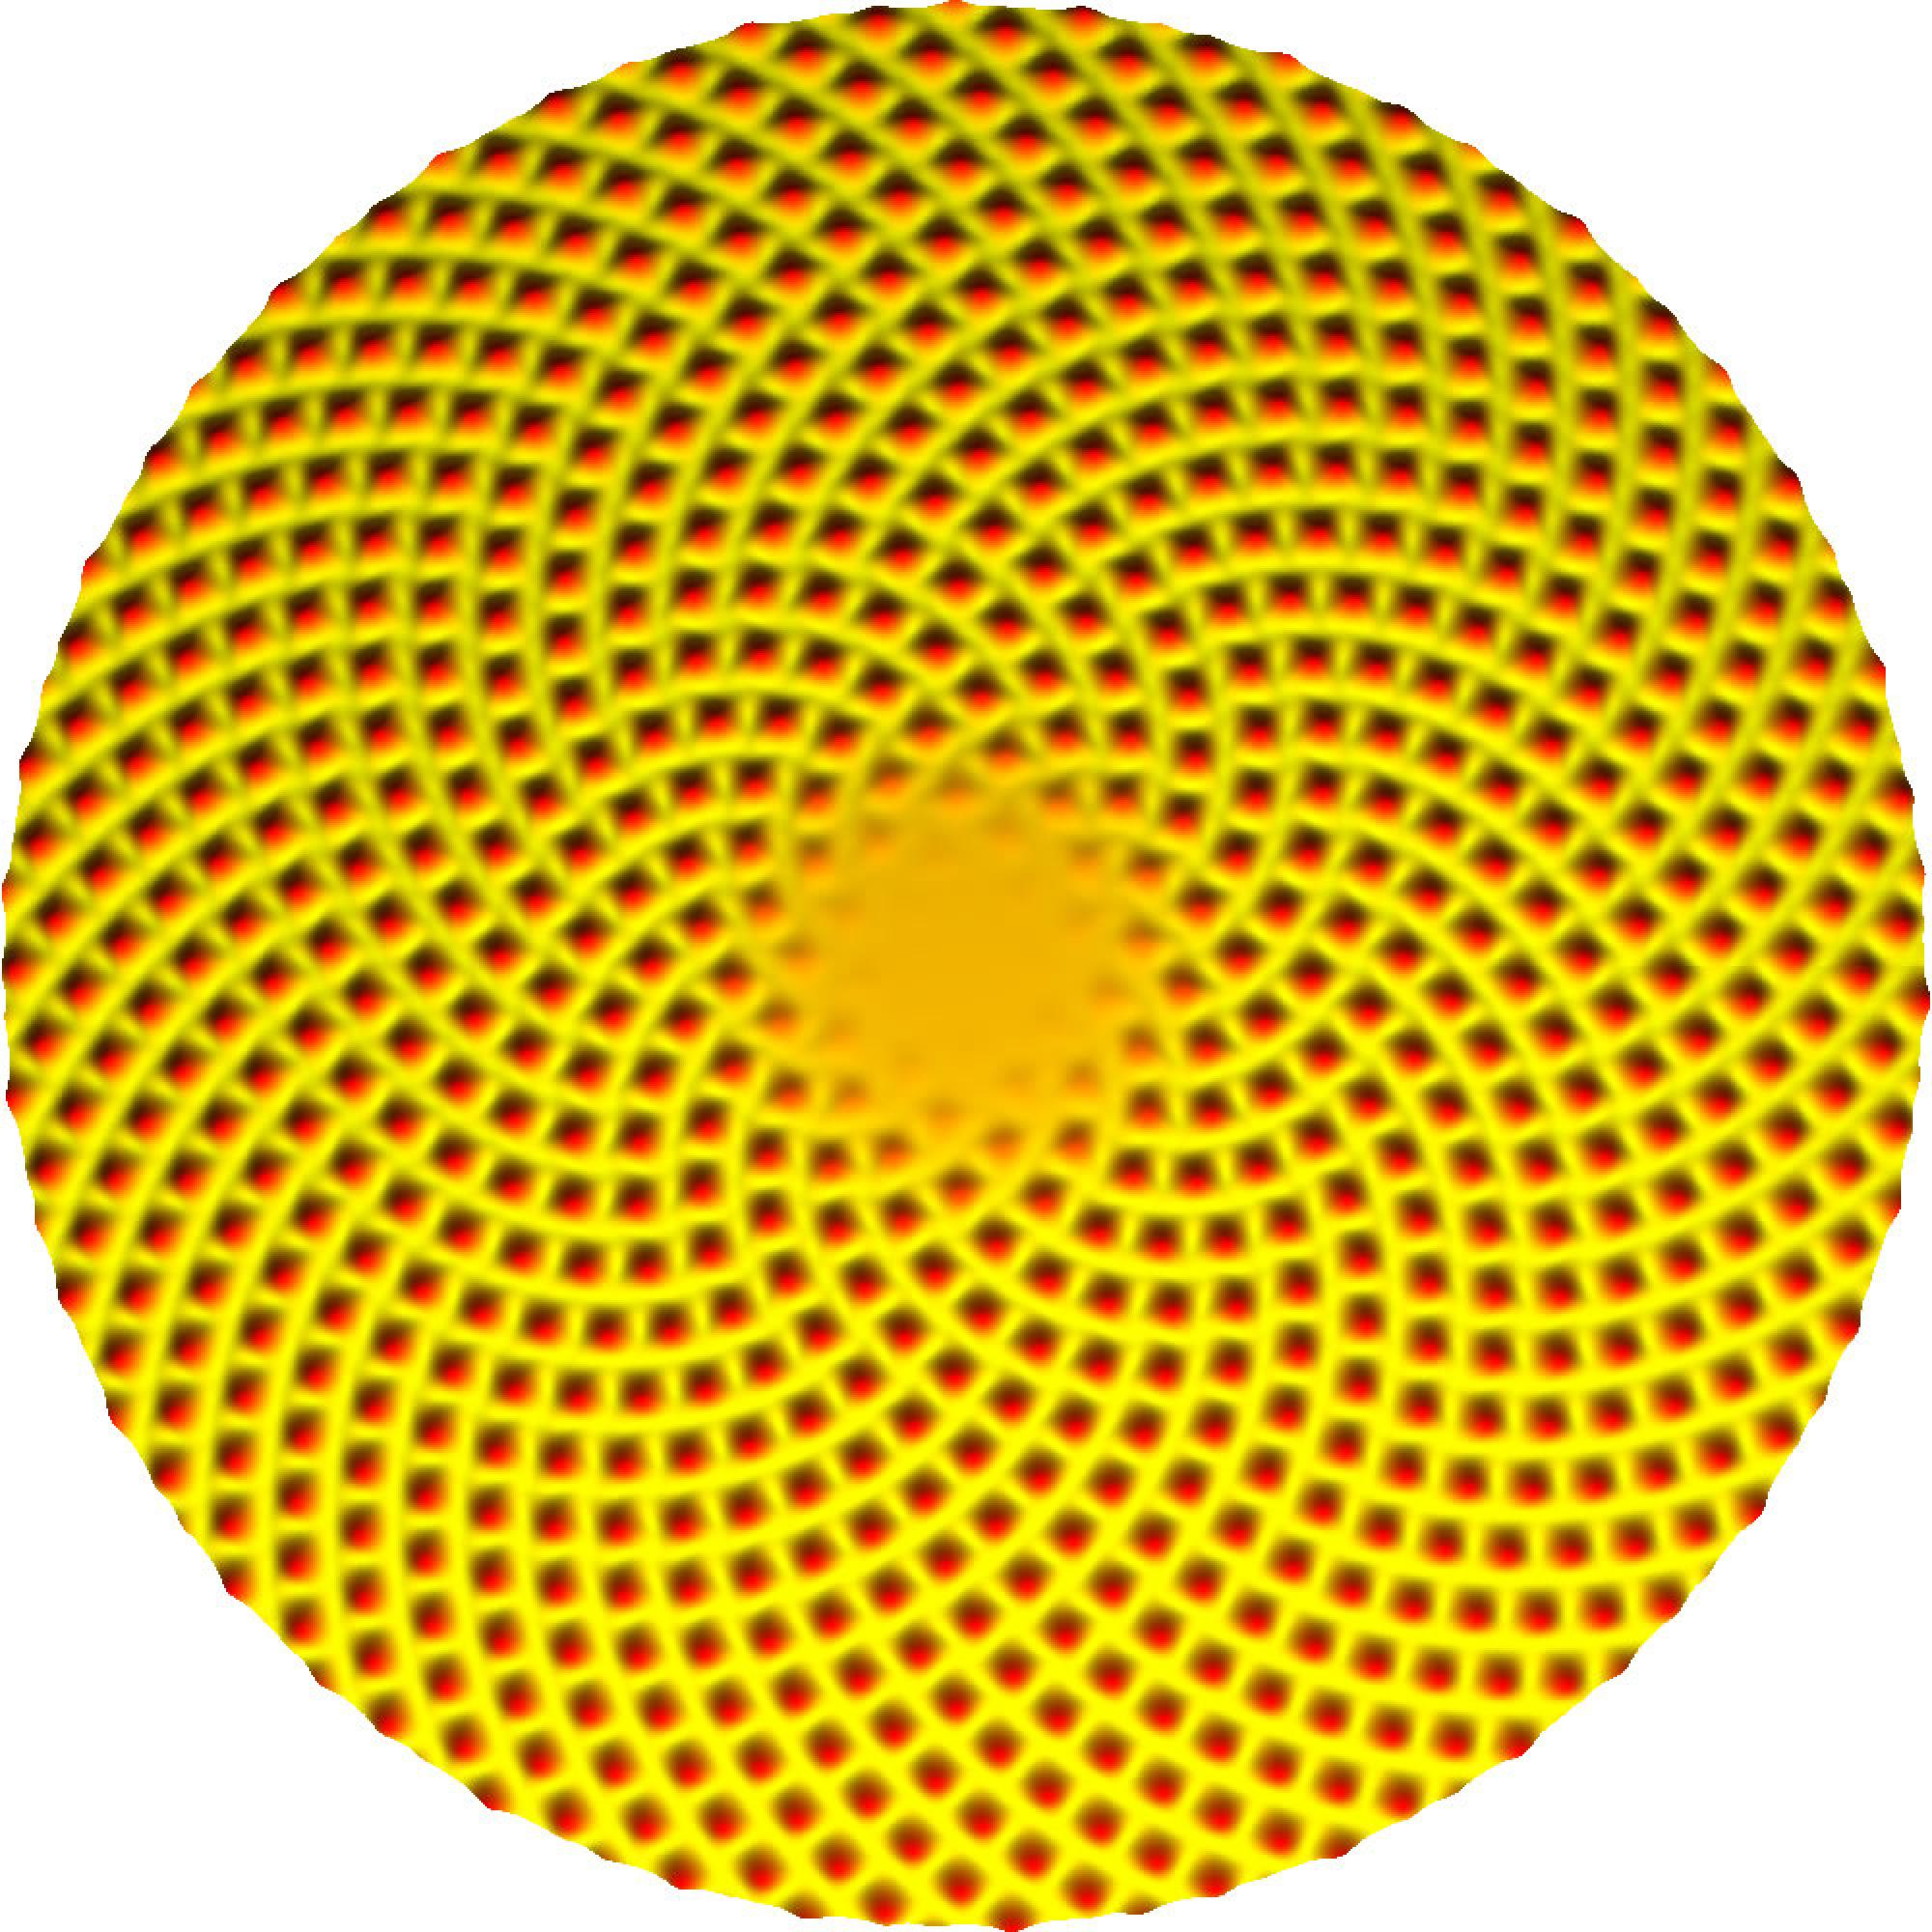 This image shows the pattern on the head of a sunflower as generated by a mathematical model of plant growth.